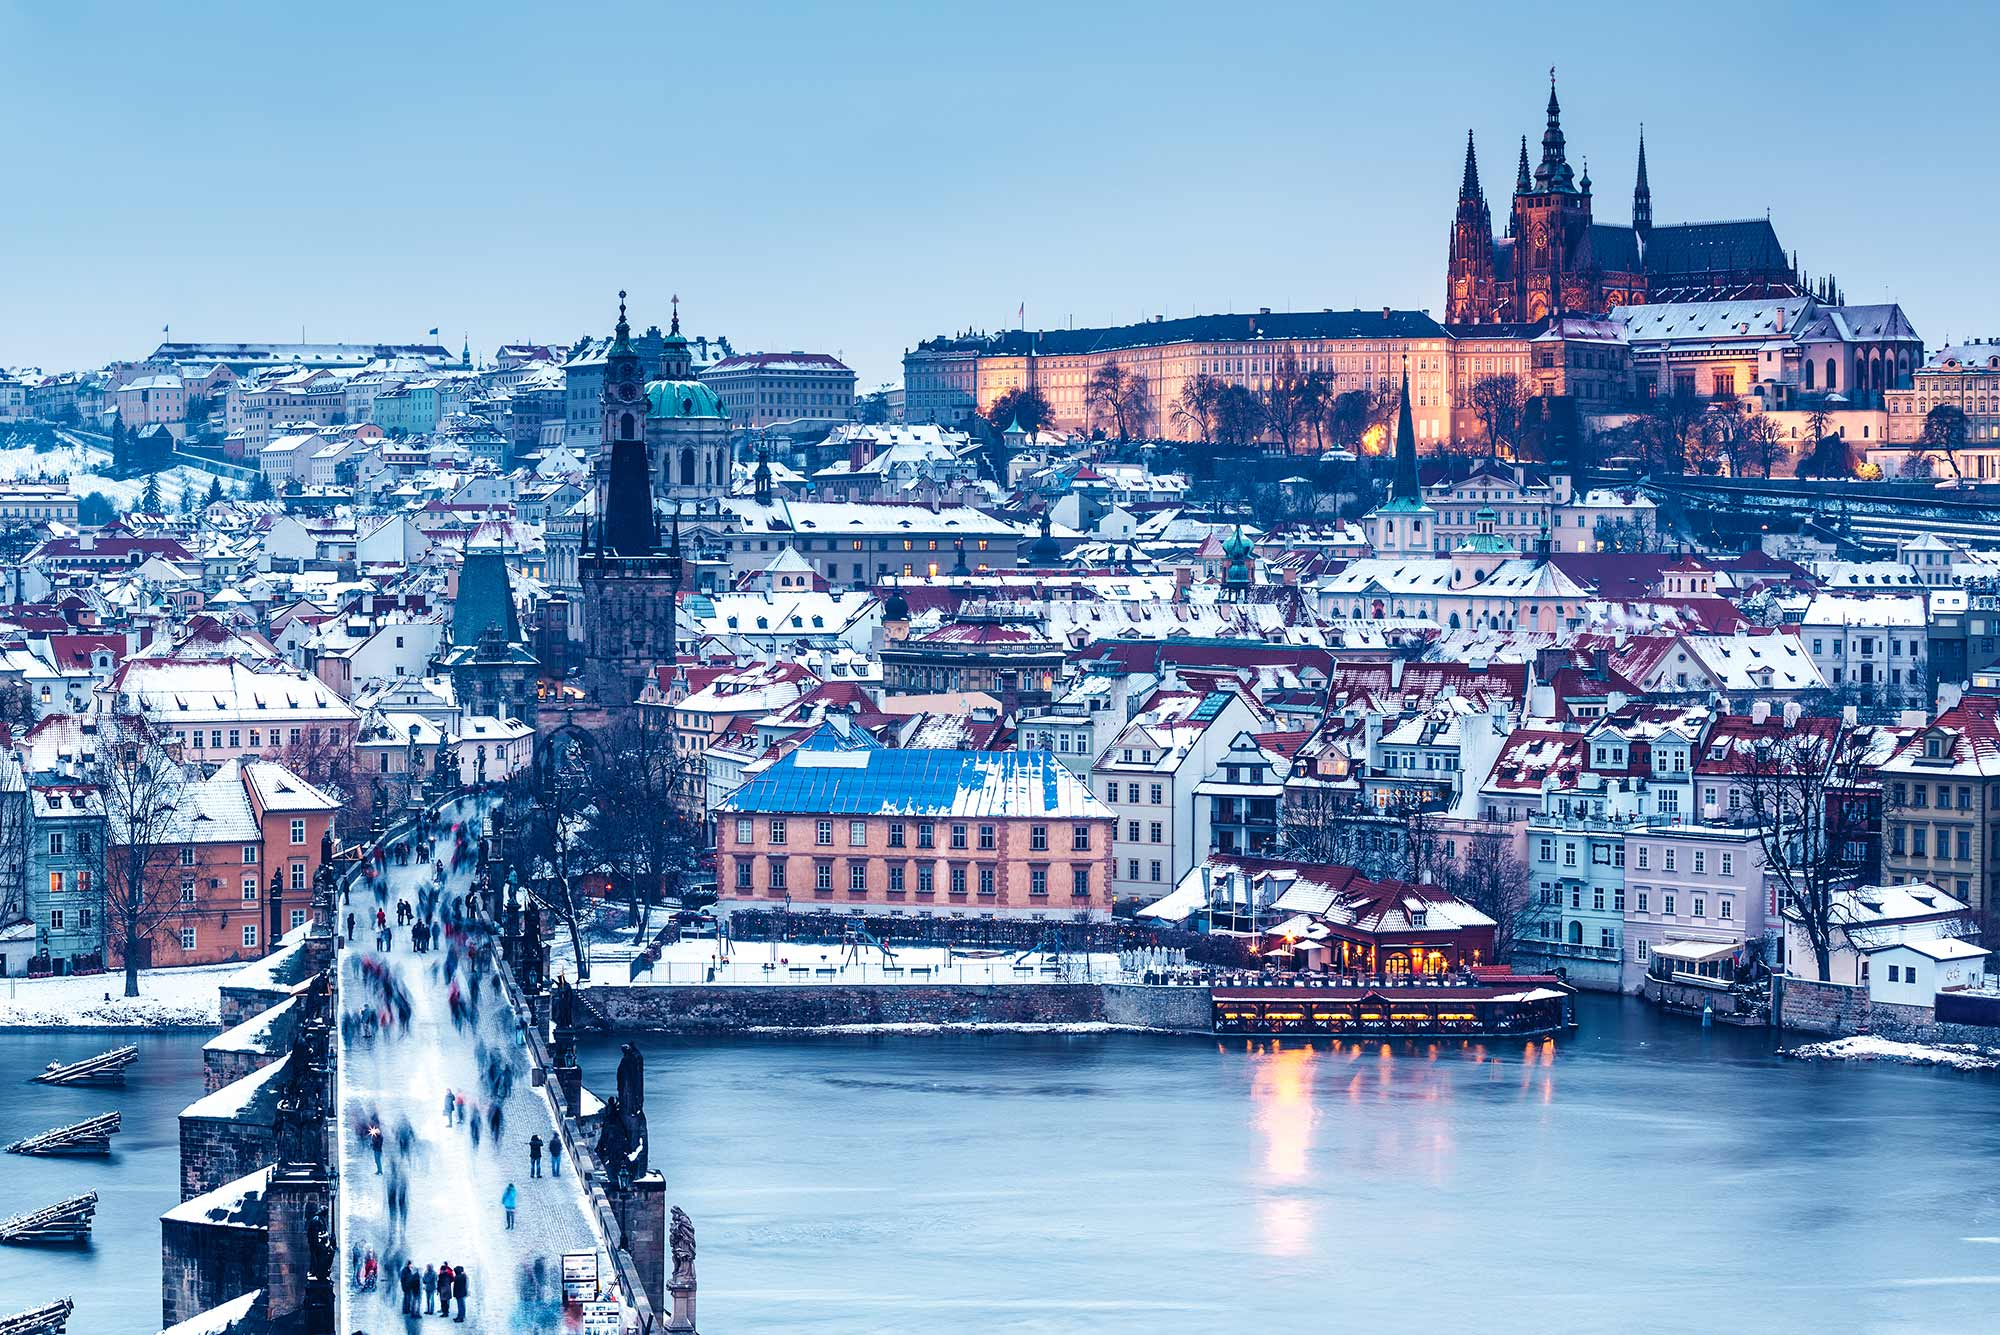 A wintery scene in Prague with the Charles Bridge and Prague Castle in the background.